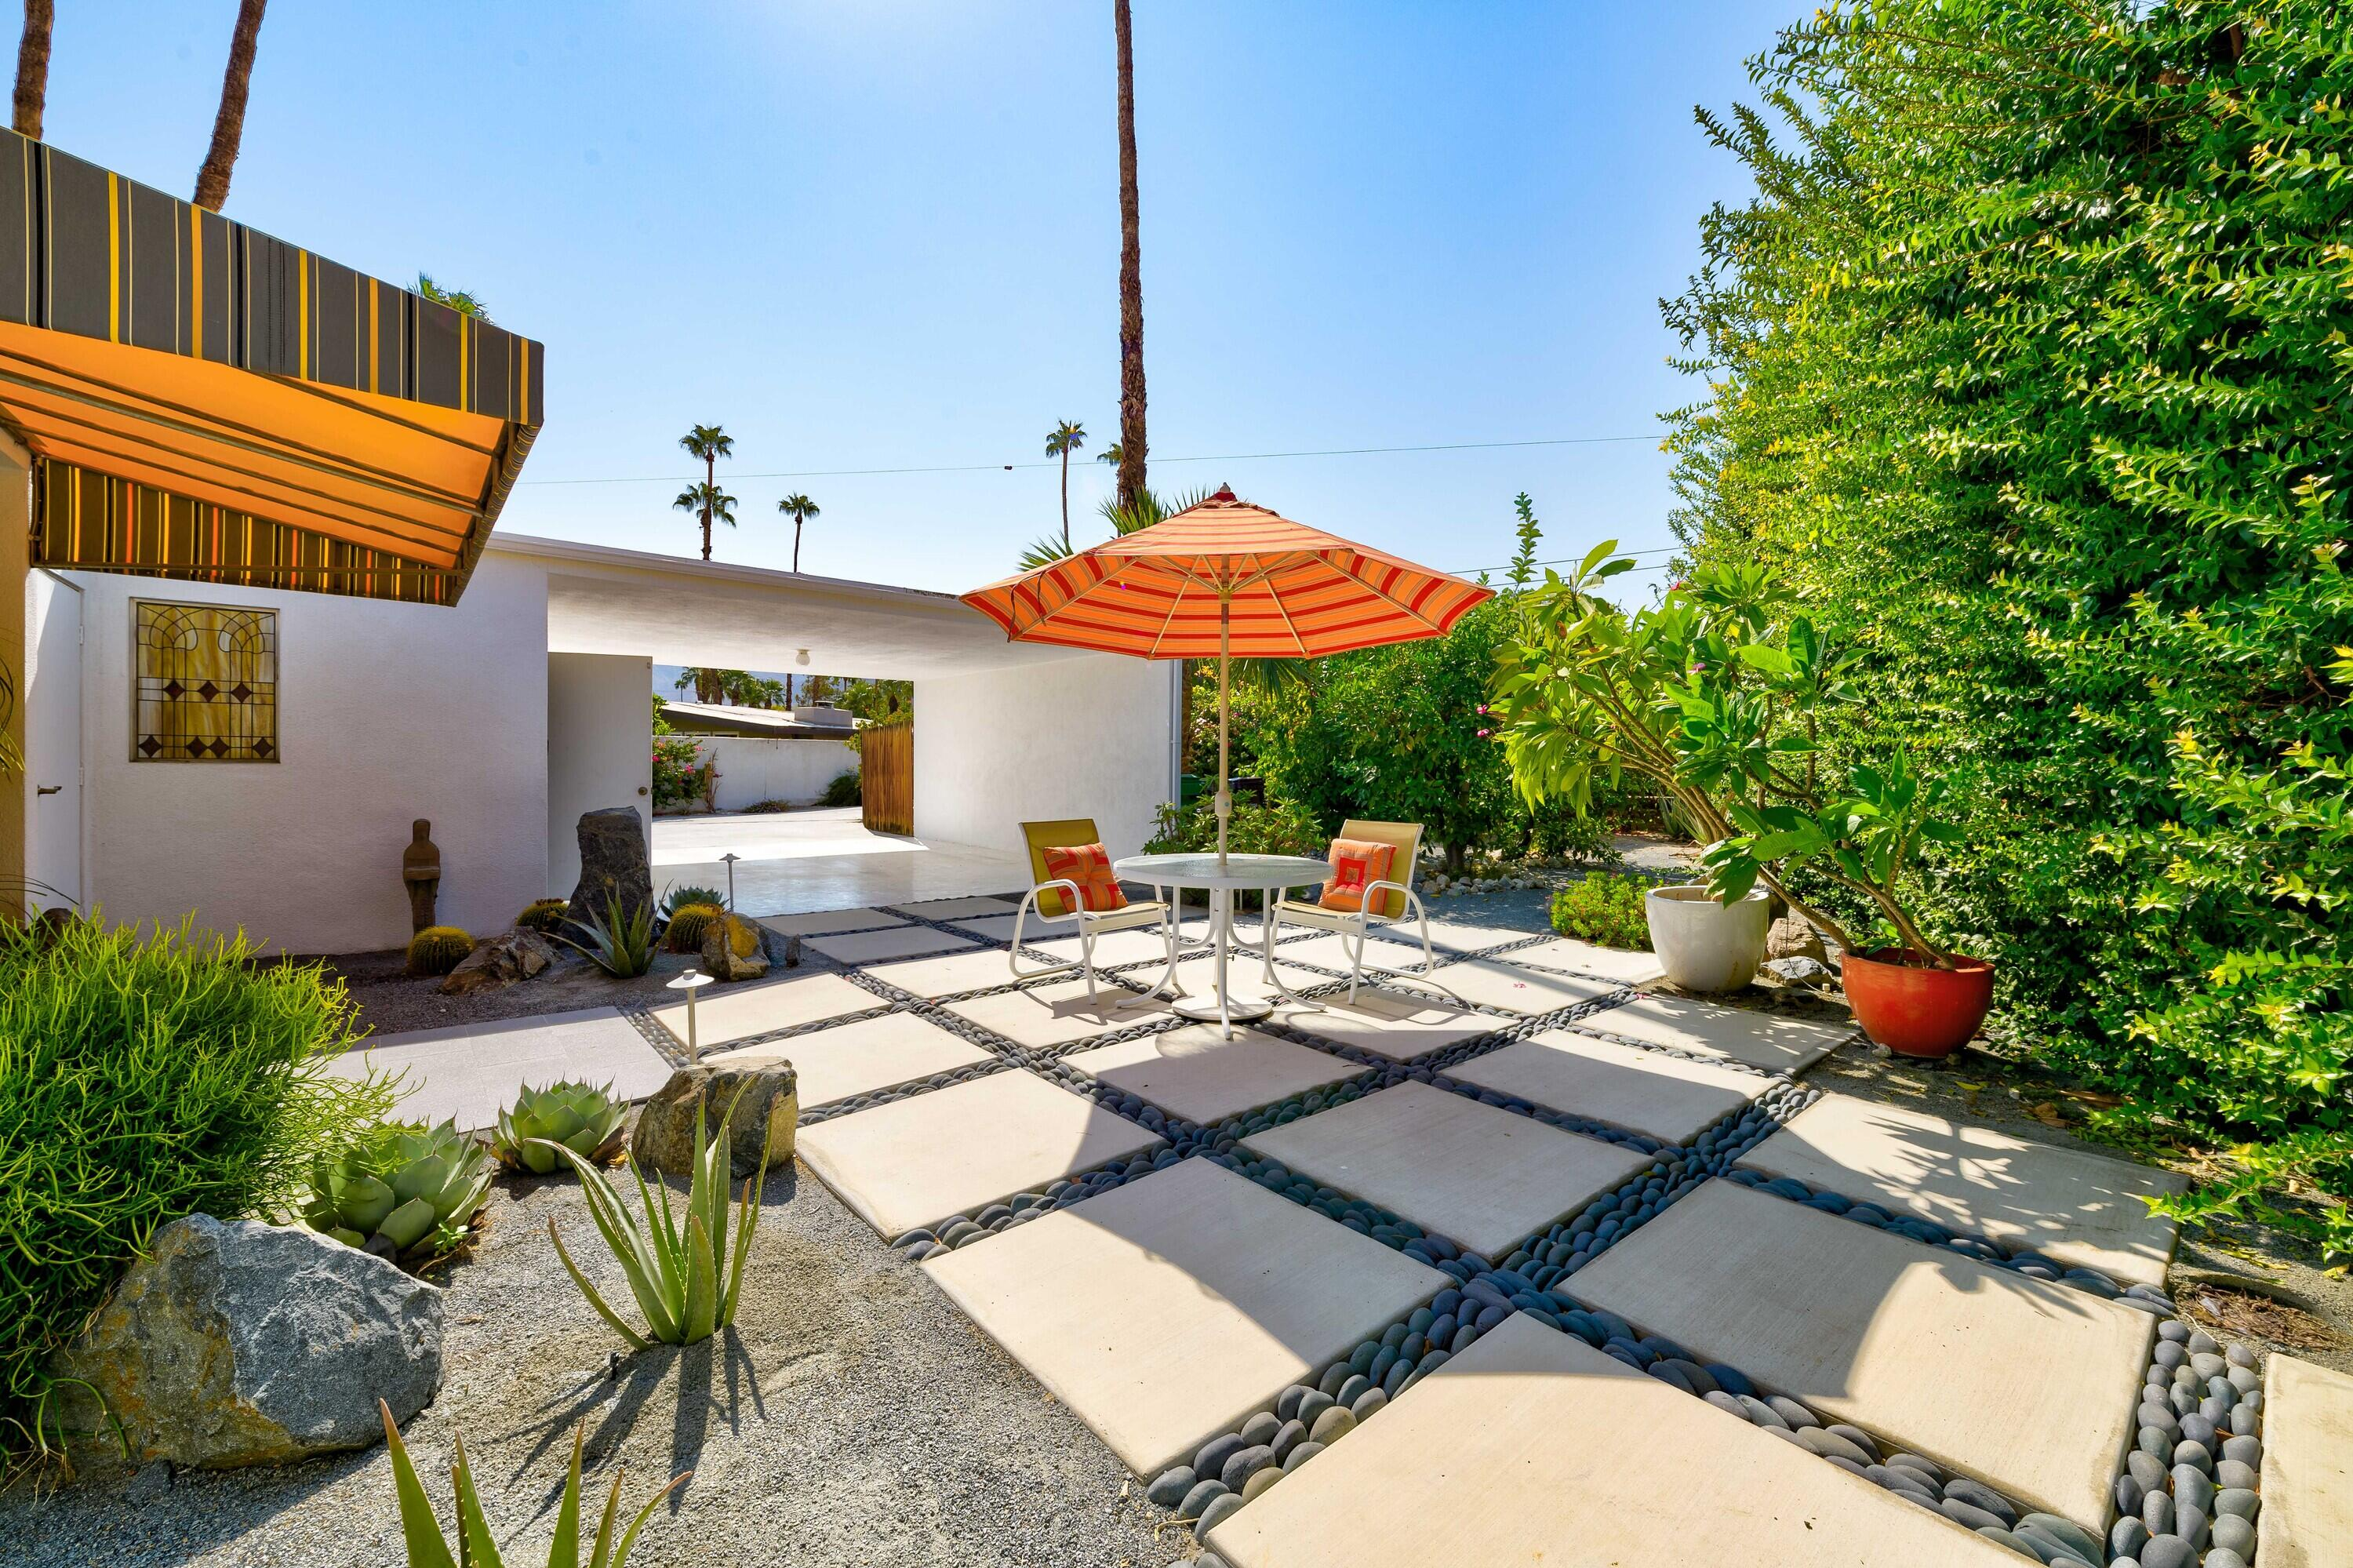 Simplicity of design is key to this mid-century modern home.  Floor-to-ceiling sliding glass doors with an emphasis to connect with nature and bring the outdoors in. Geometric cement and stone work in the front courtyard leads to a double door entry foyer with original Terrazzo floor. The open floor plan features a newly remodeled kitchen with sleek cabinetry, quartz countertops, customized tile and Newport Brass fixtures. The GE Cafe appliances are included. A Vintage Wet Bar is adjacent to the dining/living area. 2BR/2BA  The primary bedroom has access to a private side patio.  The secondary bedroom has an office alcove.. The bathrooms were remodeled with tiled showers, new fixtures, quartz countertops, and porcelain tile floors. There is an abundance of natural light throughout.  This is one of four mid-century homes sharing a history of Film and Broadway Stars from the 50's.  From the interior and the Lanai you'll enjoy the serenity of lush greenspace and mature landscaping..  A beautiful swimming pool beckons fun and relaxation for those within this private enclave. Desirable South Palm Desert neighborhood within minutes to the El Paseo Shopping District, Fabulous Restaurants, hiking, Theatres and so much more. This is a hidden Gem!  Move in Ready for full time or seasonal enjoyment.